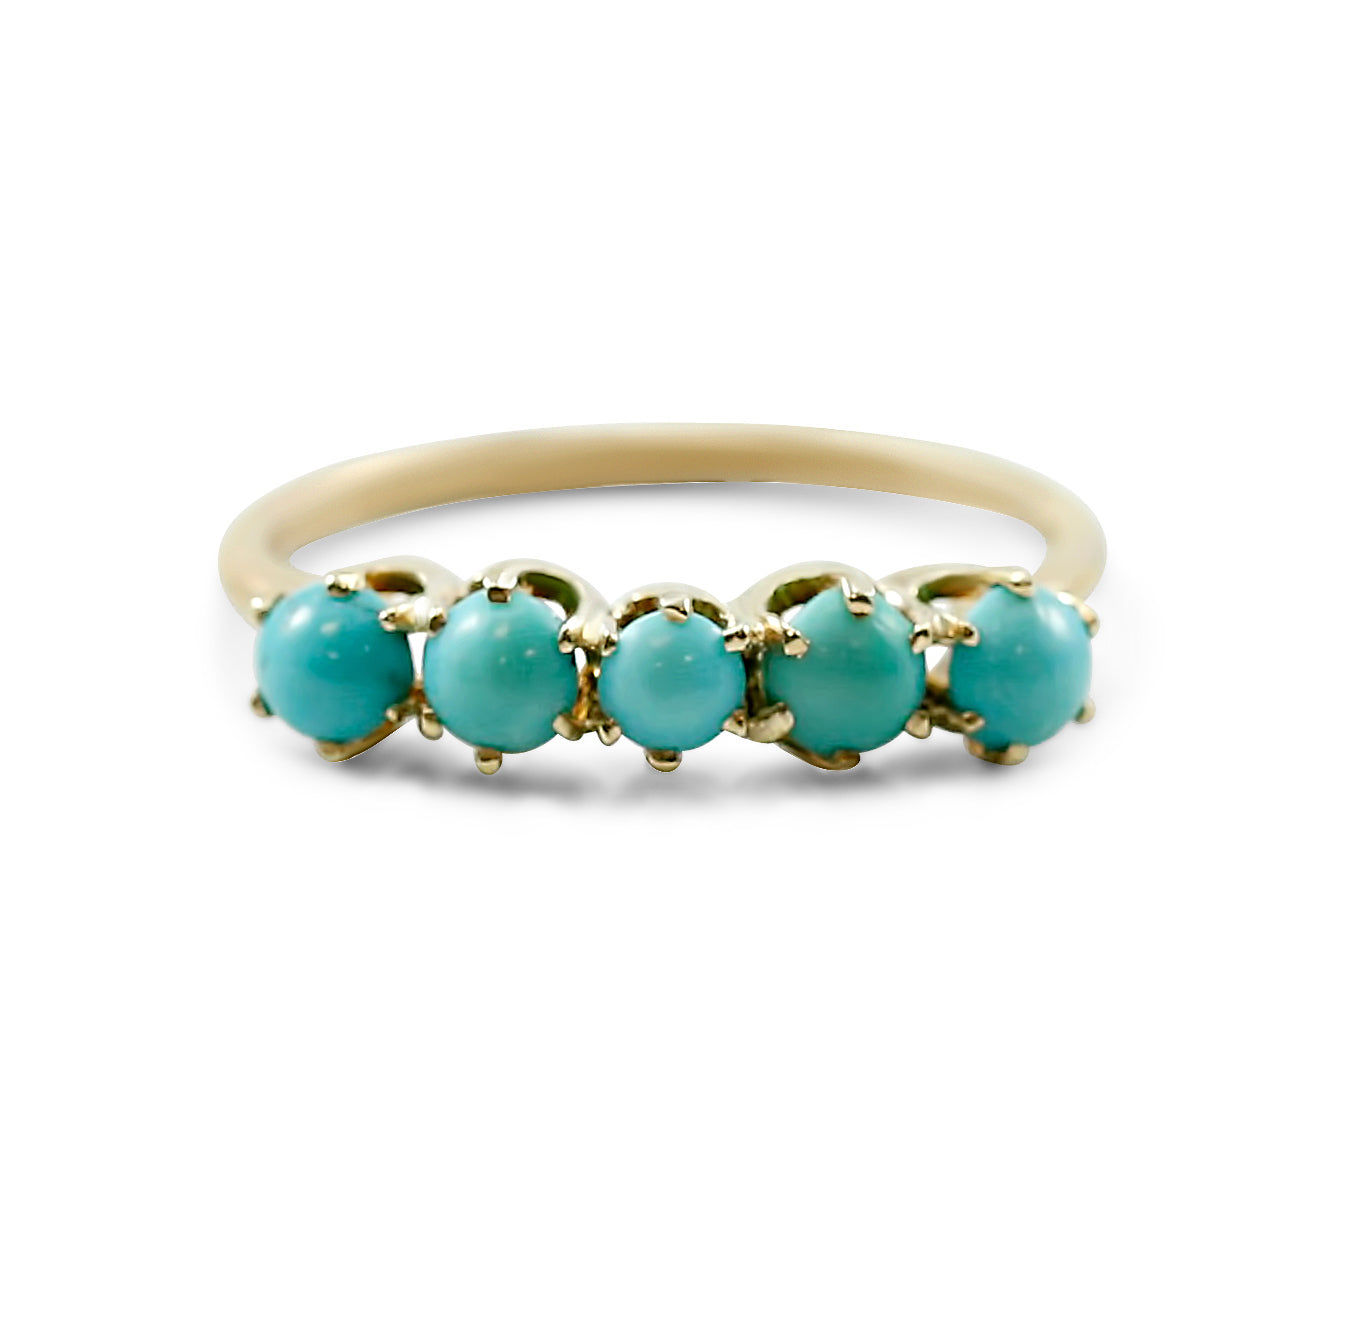 14K yellow gold turquoise estate ring with five round cabochon cut turquoise stones prong set